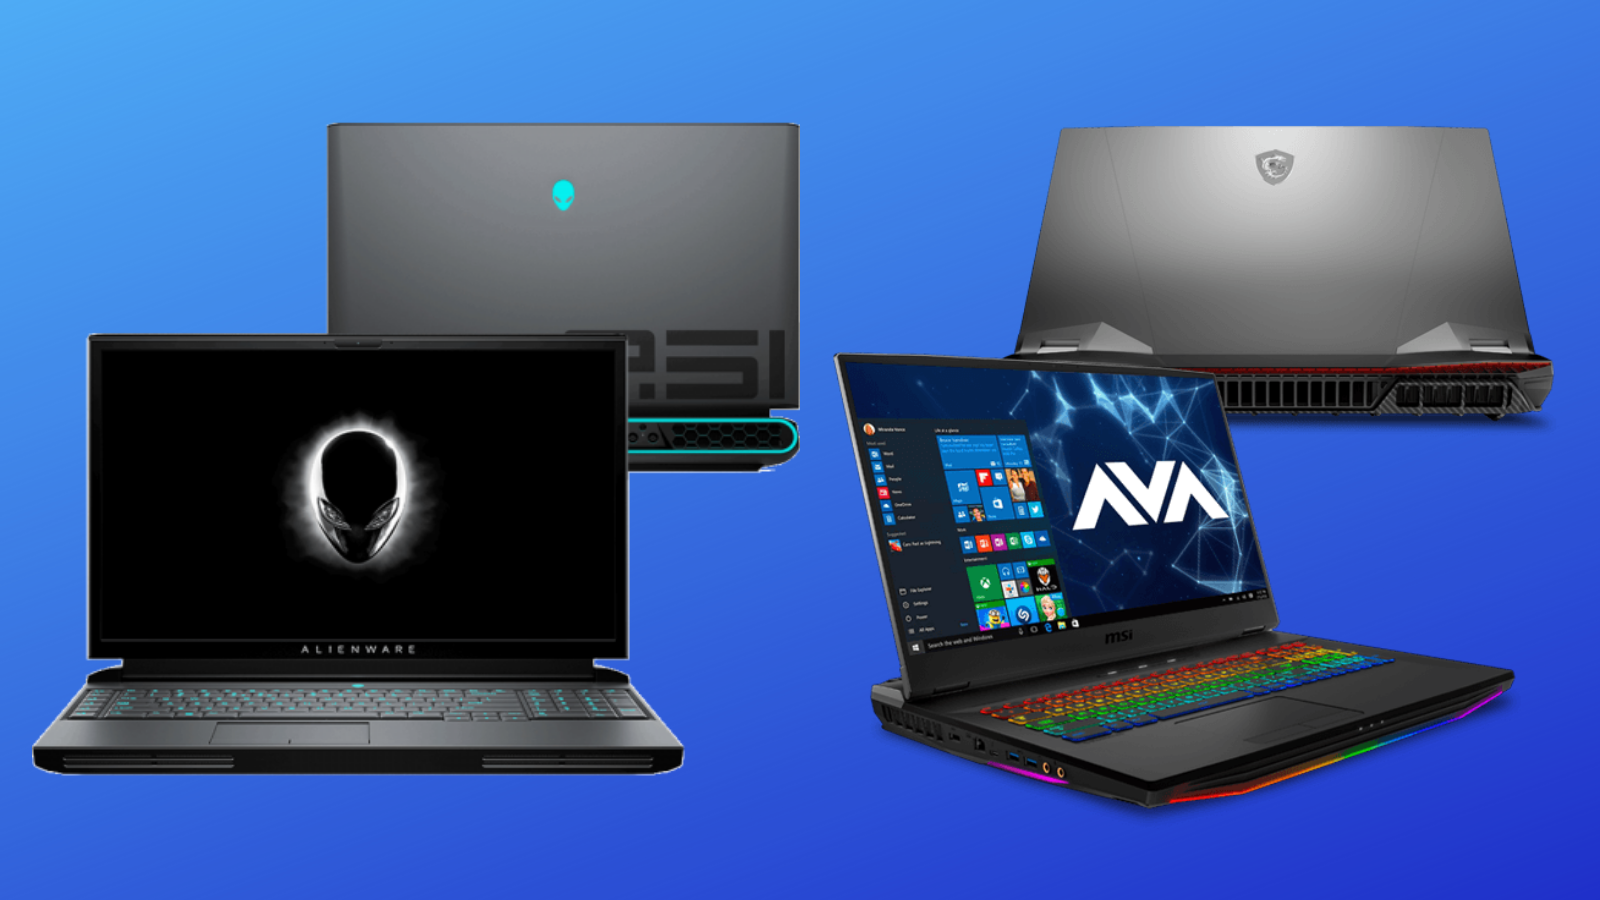 7 Best NVIDIA RTX 2080 Gaming Laptops to Buy in 2020